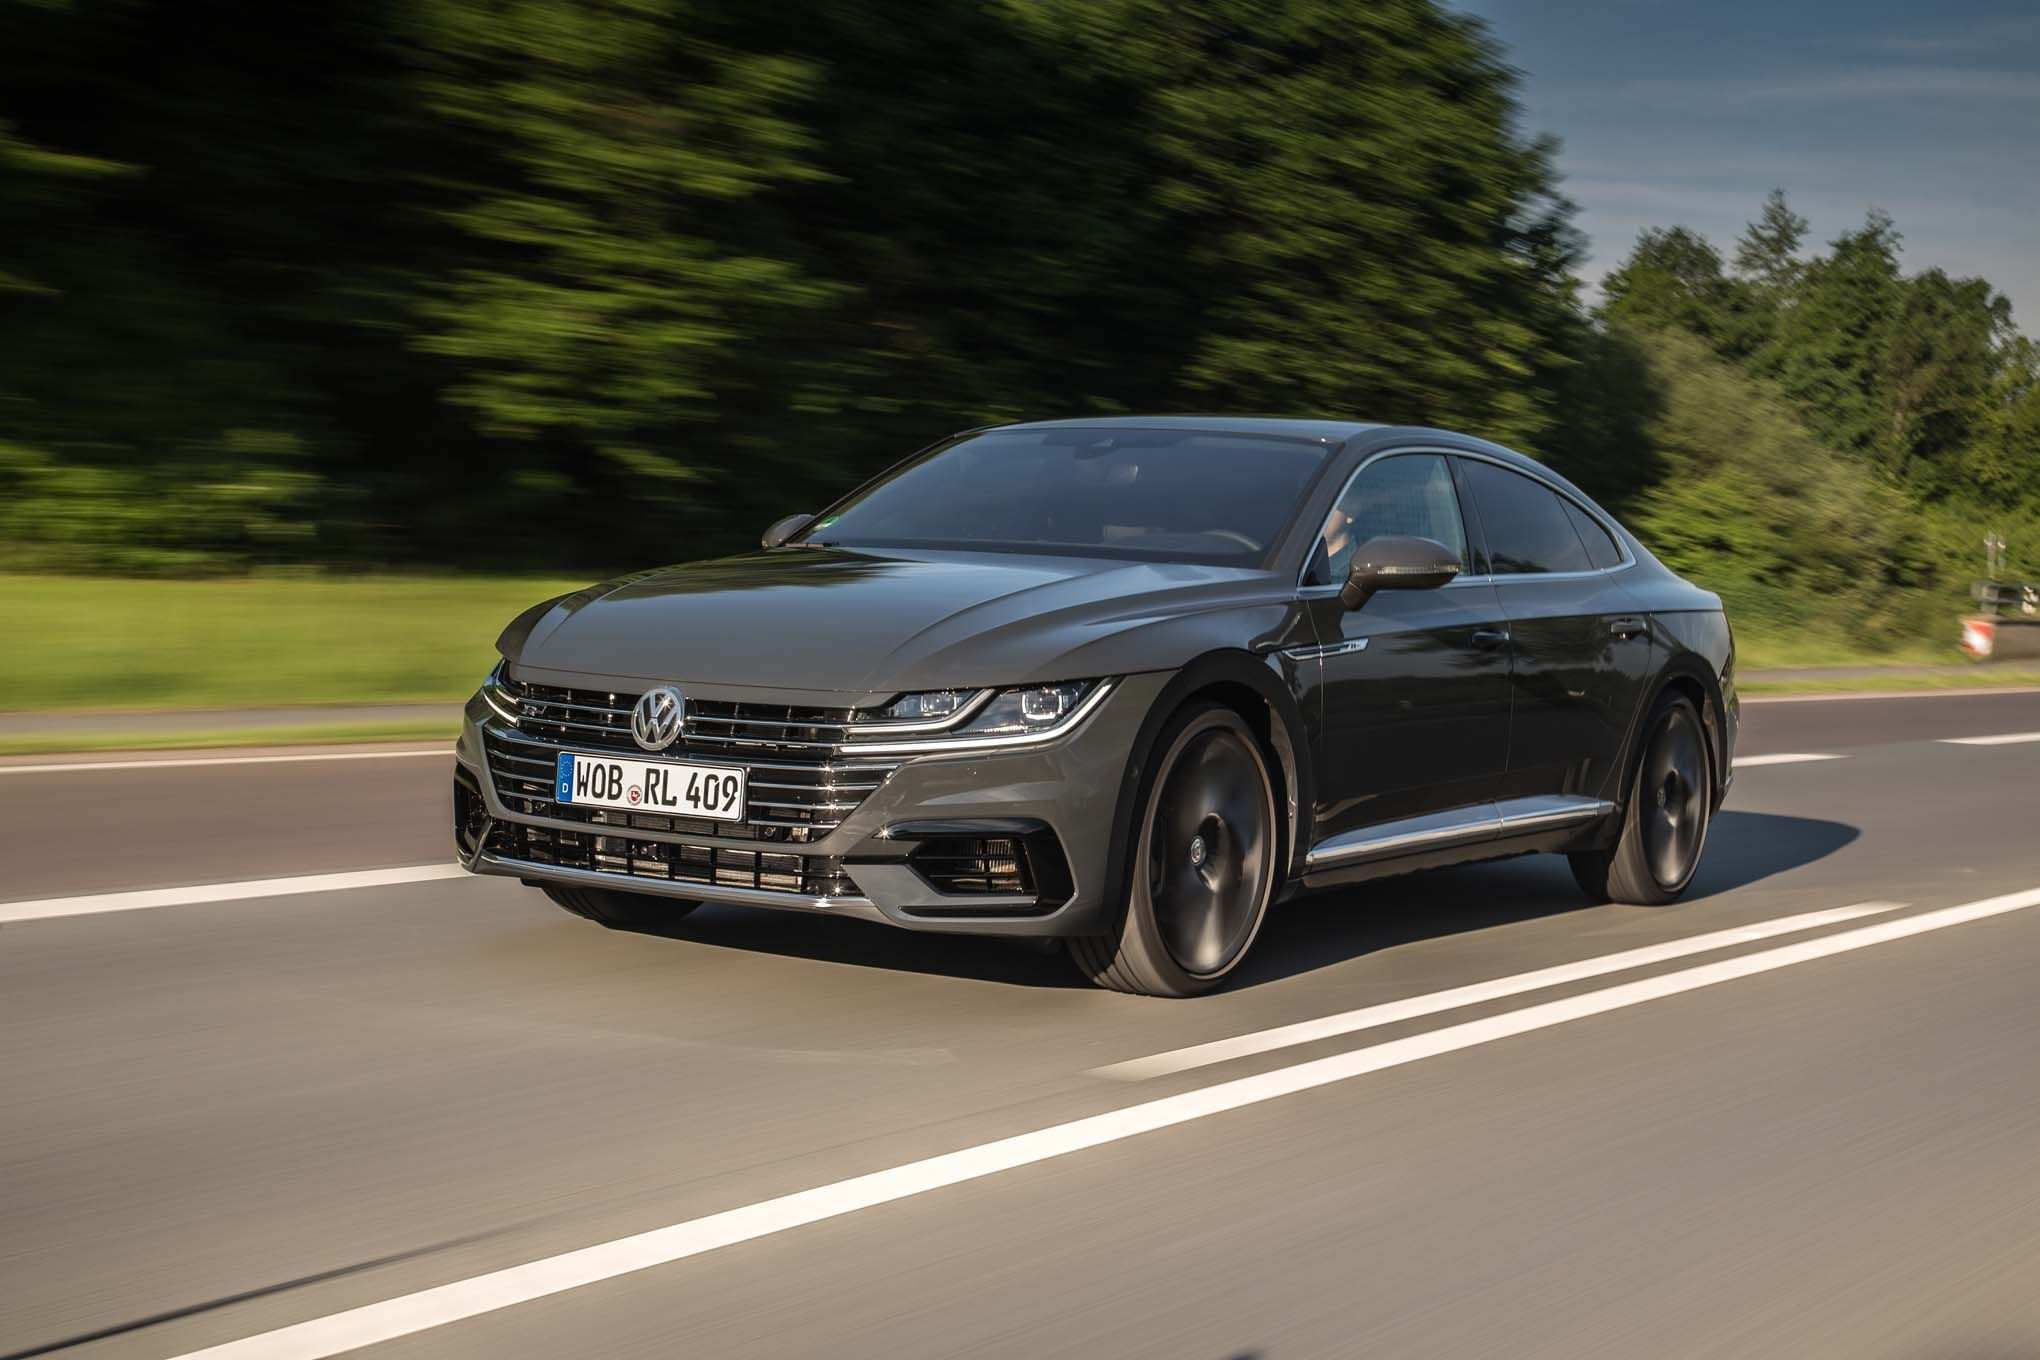 71 The Best Vw 2019 Arteon Price And Review